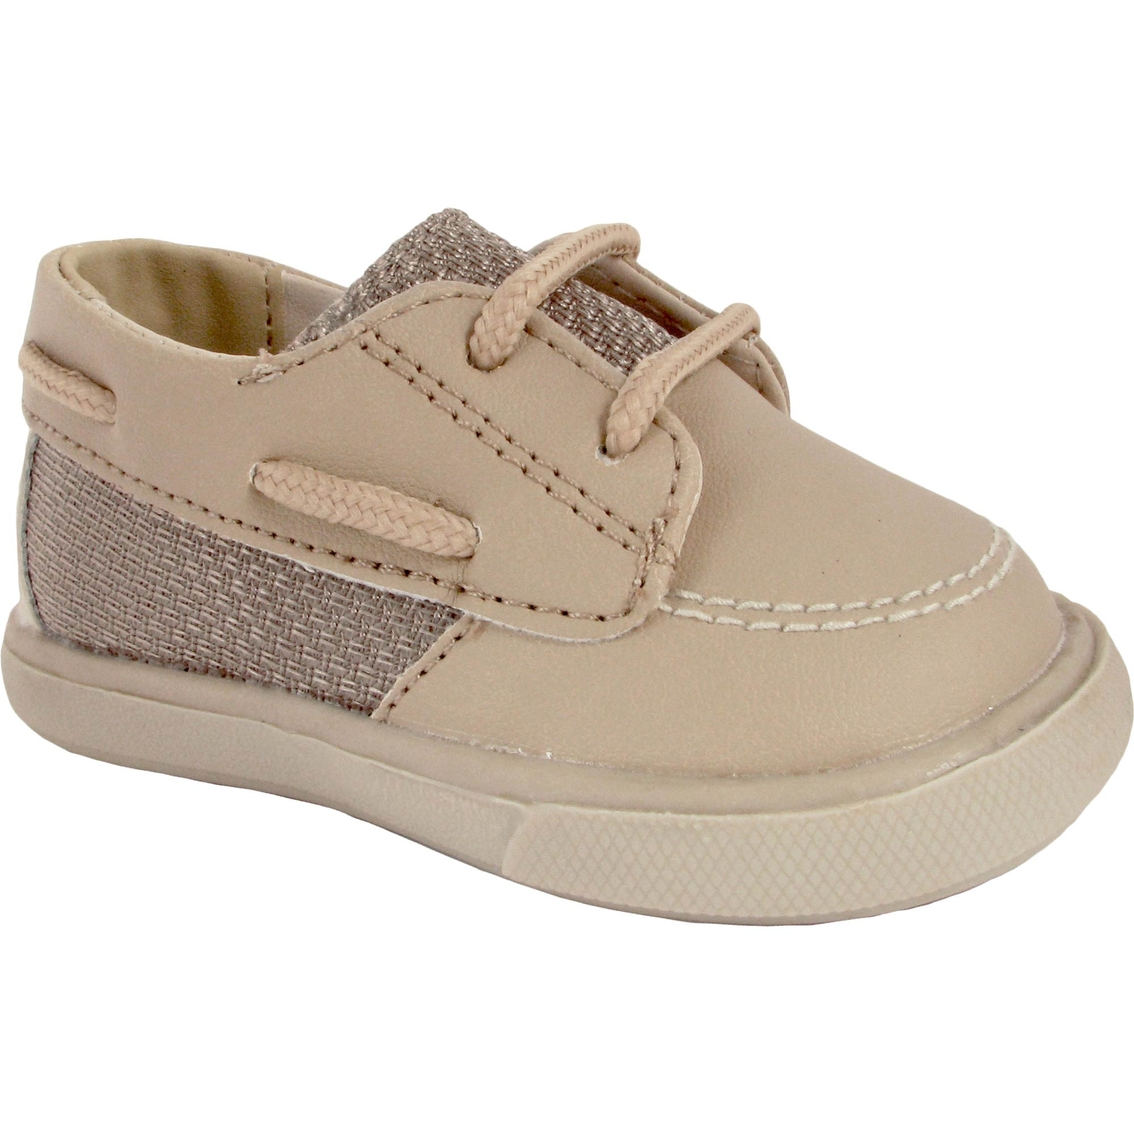 Free shipping BOTH ways on deck shoes for kids, from our vast selection of styles. Fast delivery, and 24/7/ real-person service with a smile. Click or call